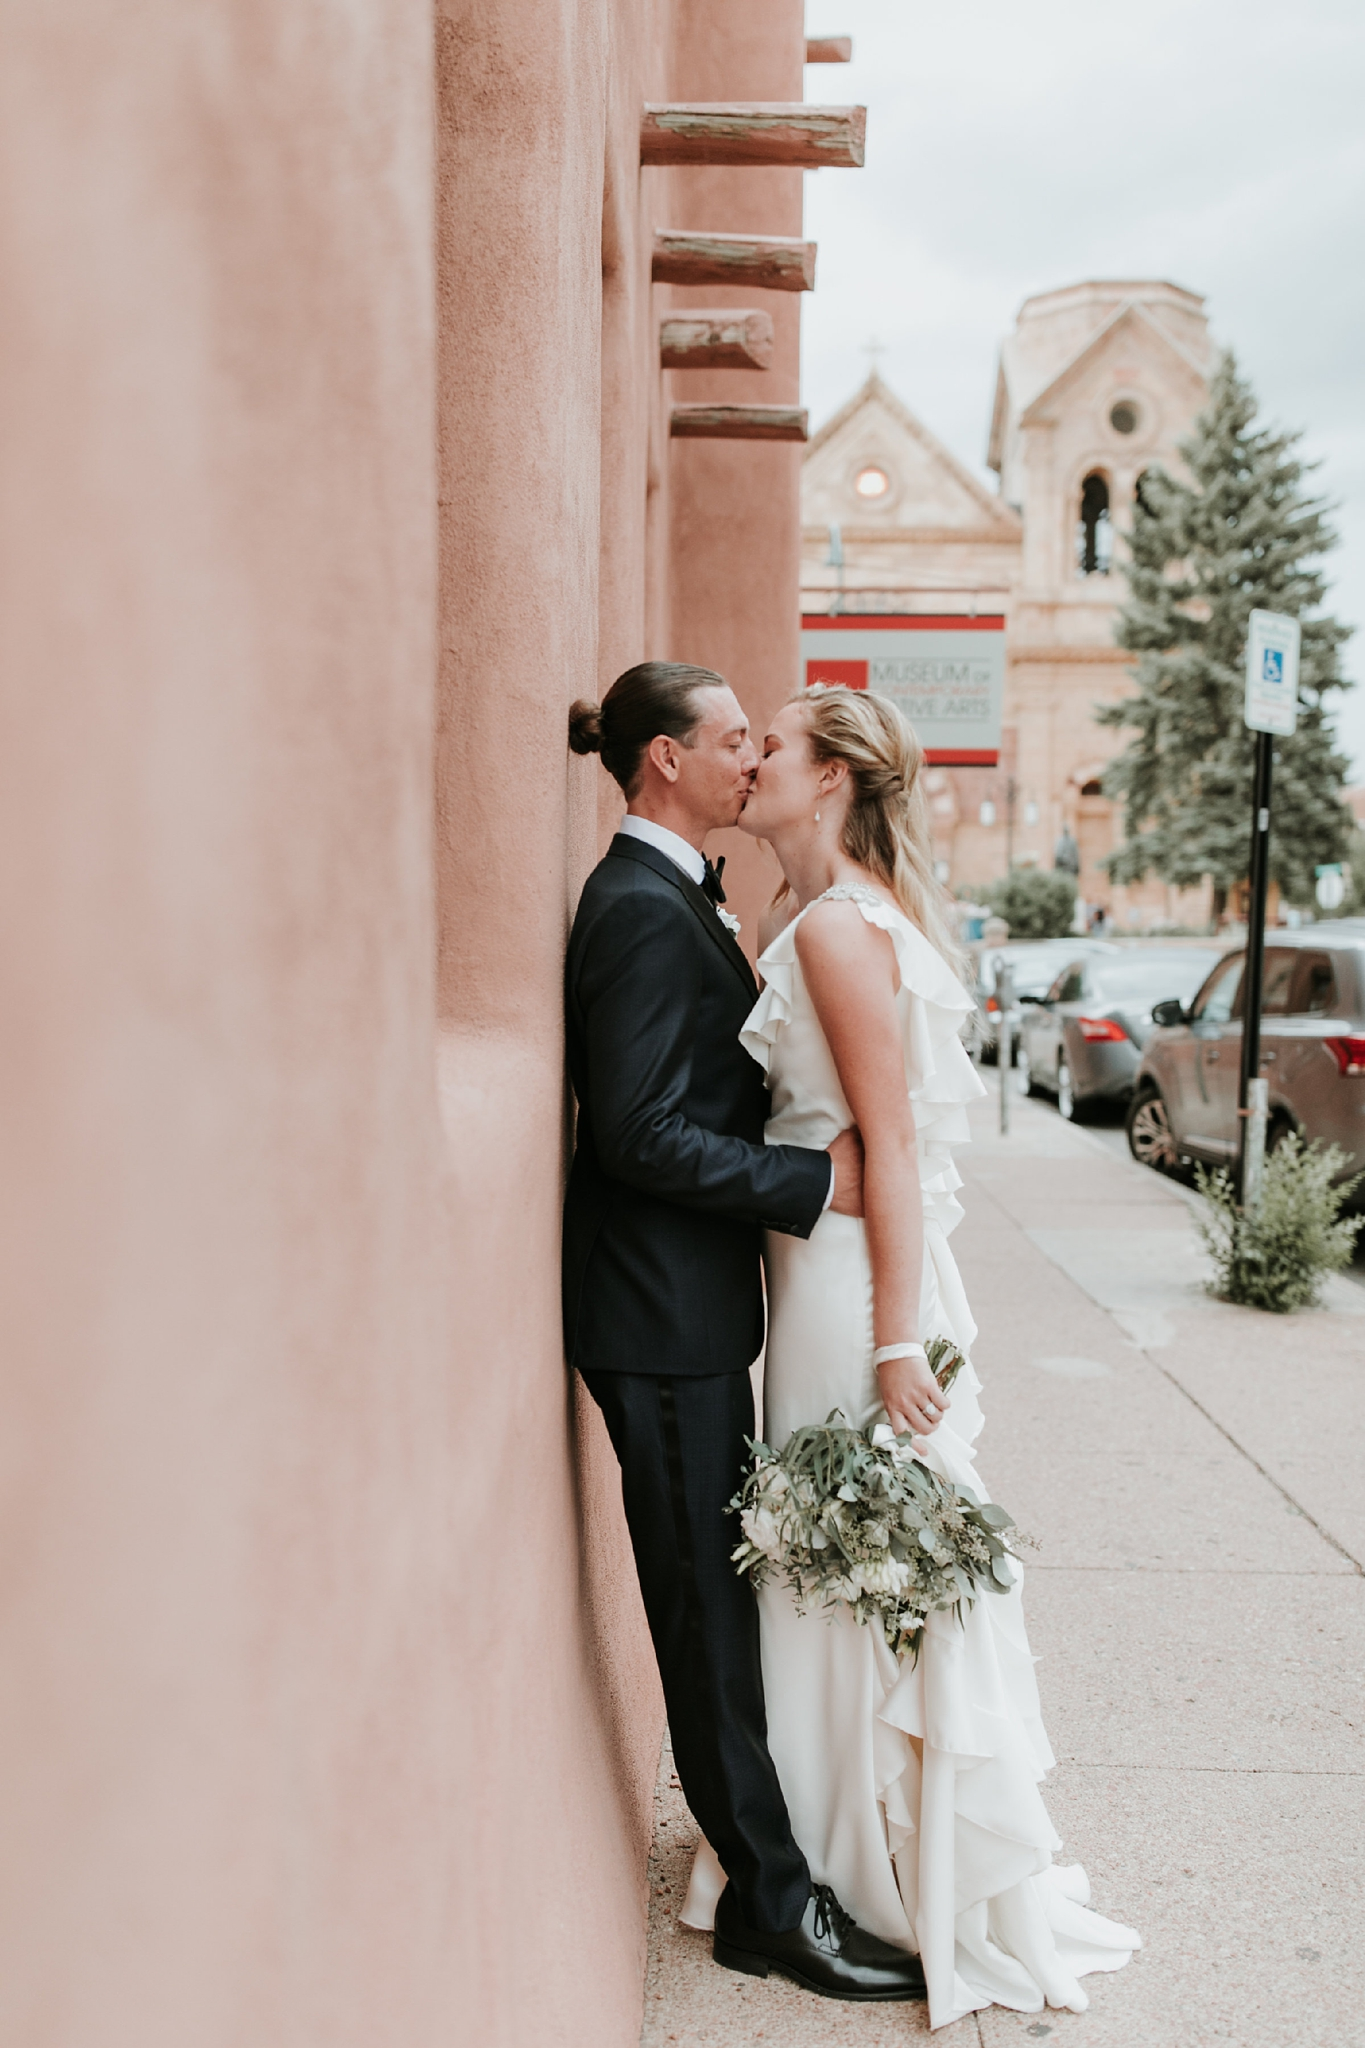 Alicia+lucia+photography+-+albuquerque+wedding+photographer+-+santa+fe+wedding+photography+-+new+mexico+wedding+photographer+-+new+mexico+wedding+-+albuquerque+wedding+-+santa+fe+wedding+-+wedding+romantics_0040.jpg